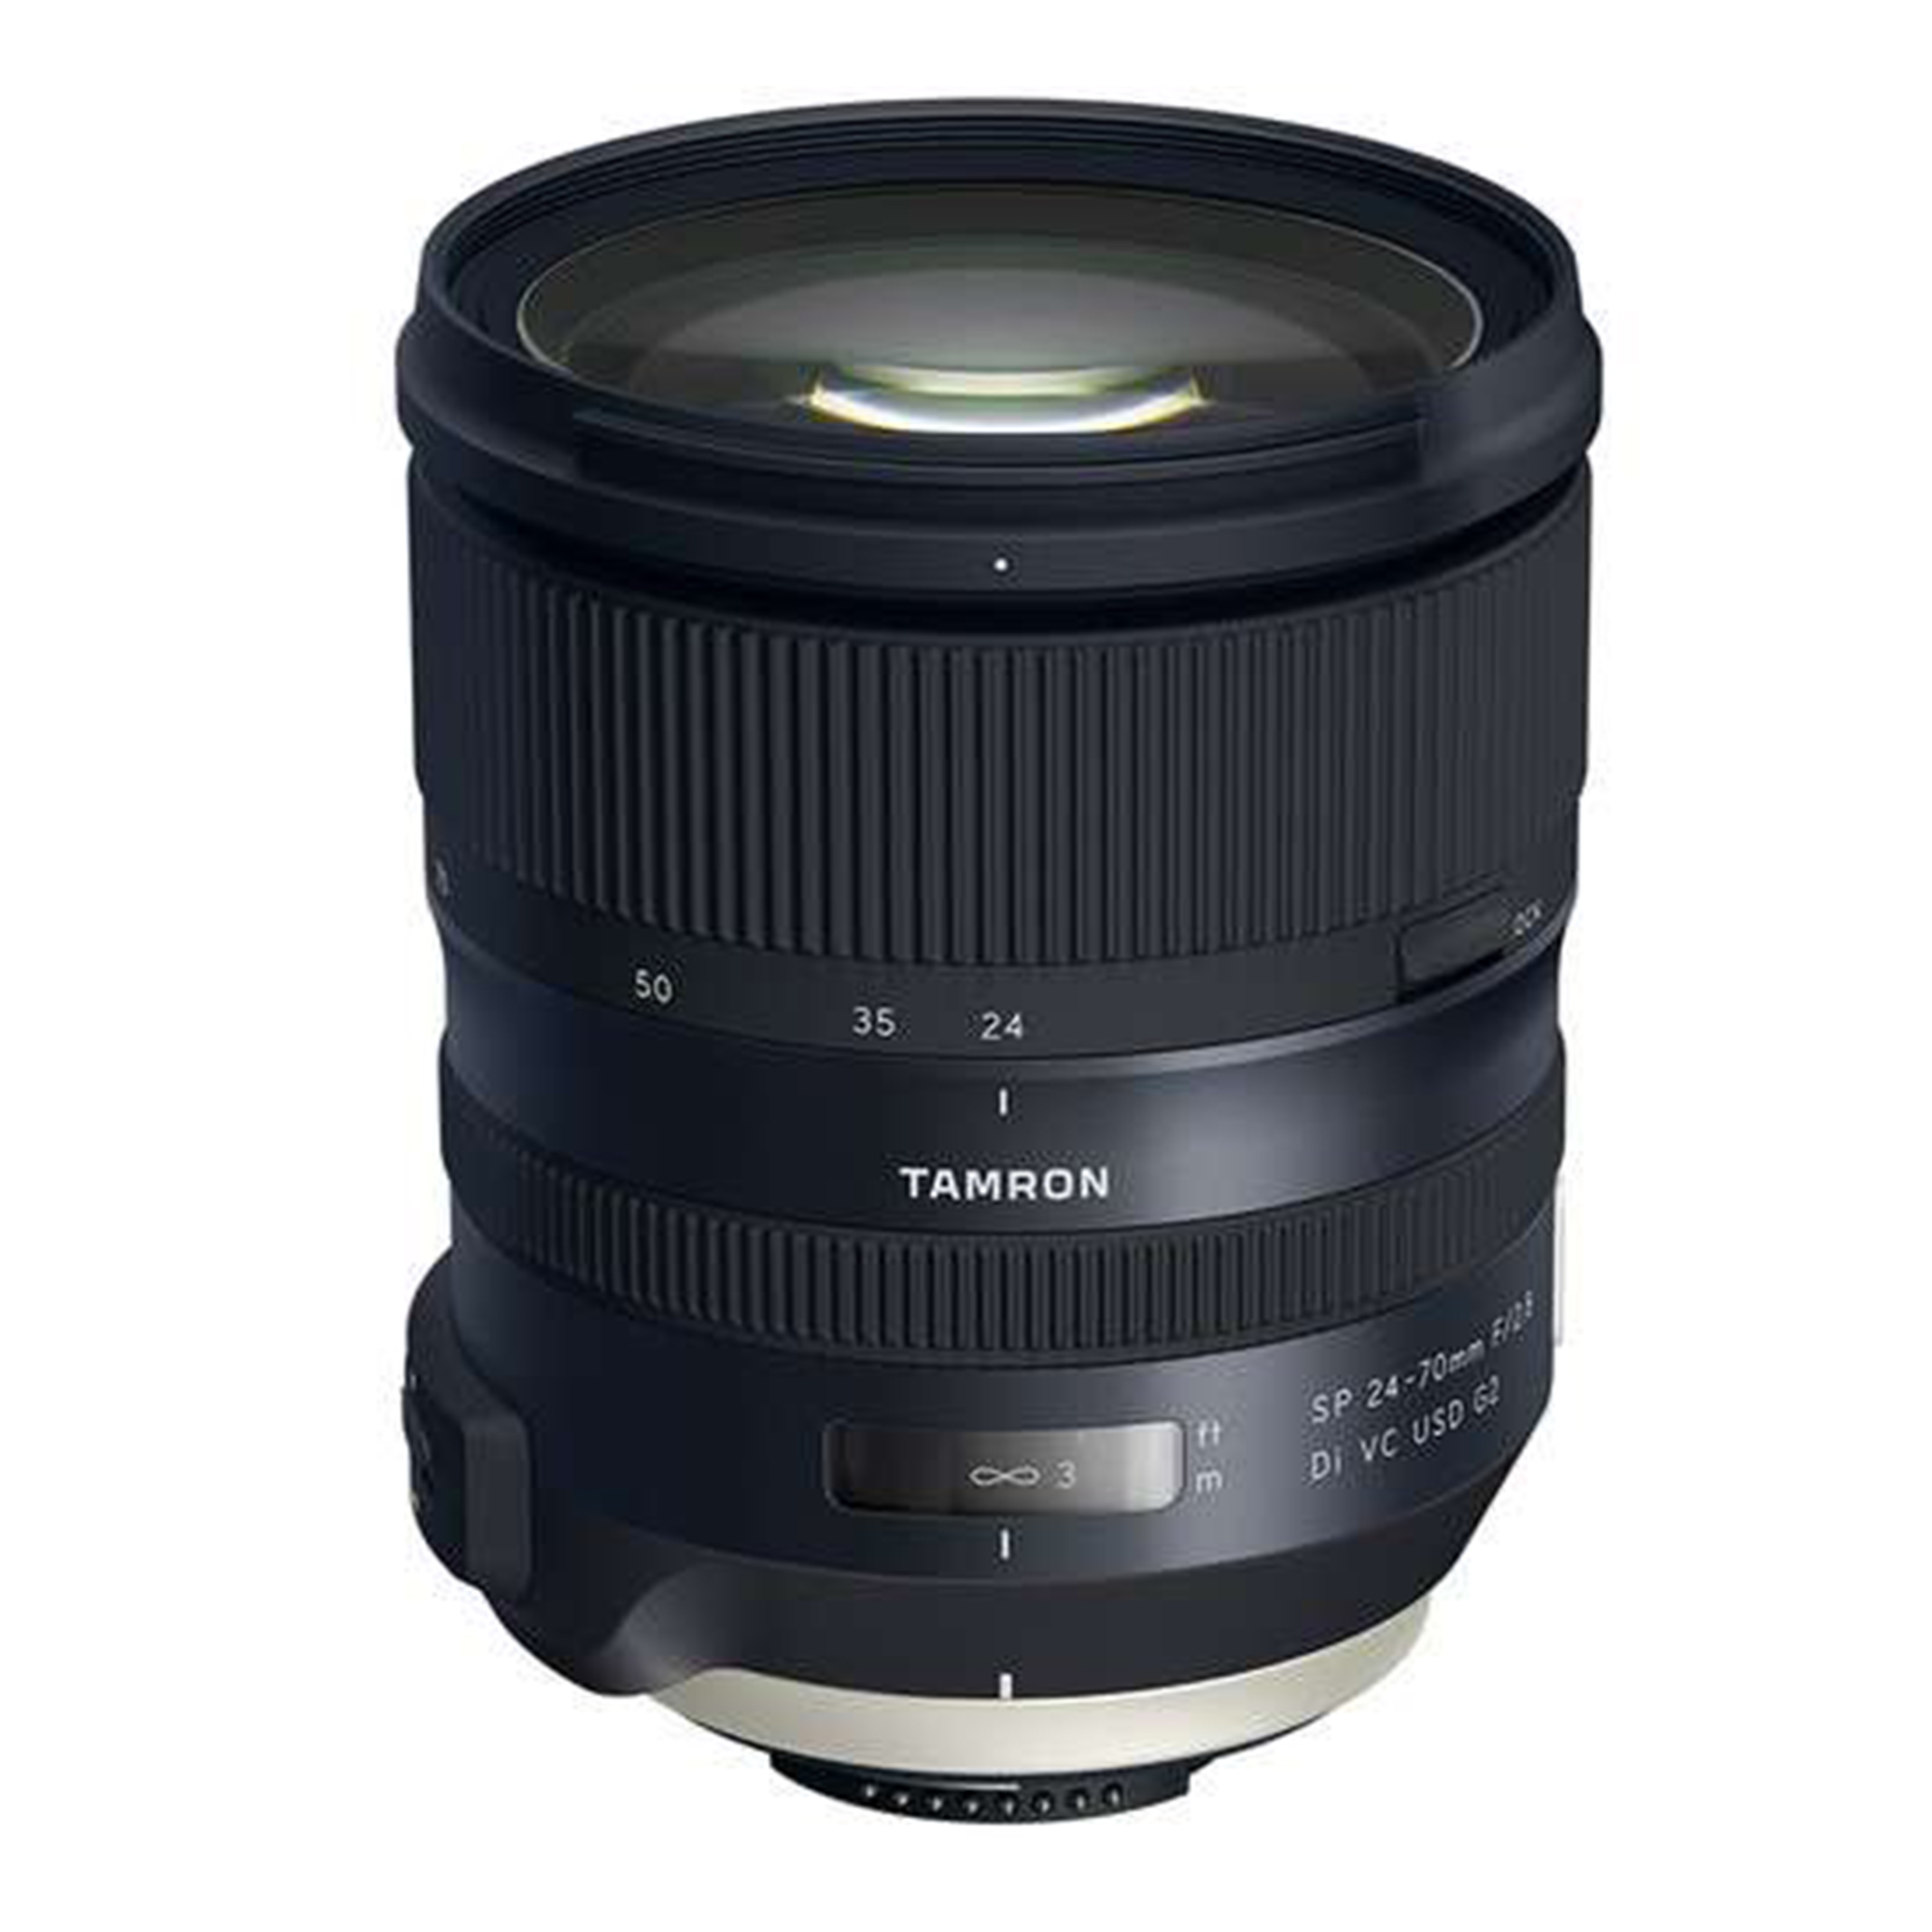 Tamron SP 24-70mm f/2.8 Di VC USD G2 Lens for Nikon ِِAF